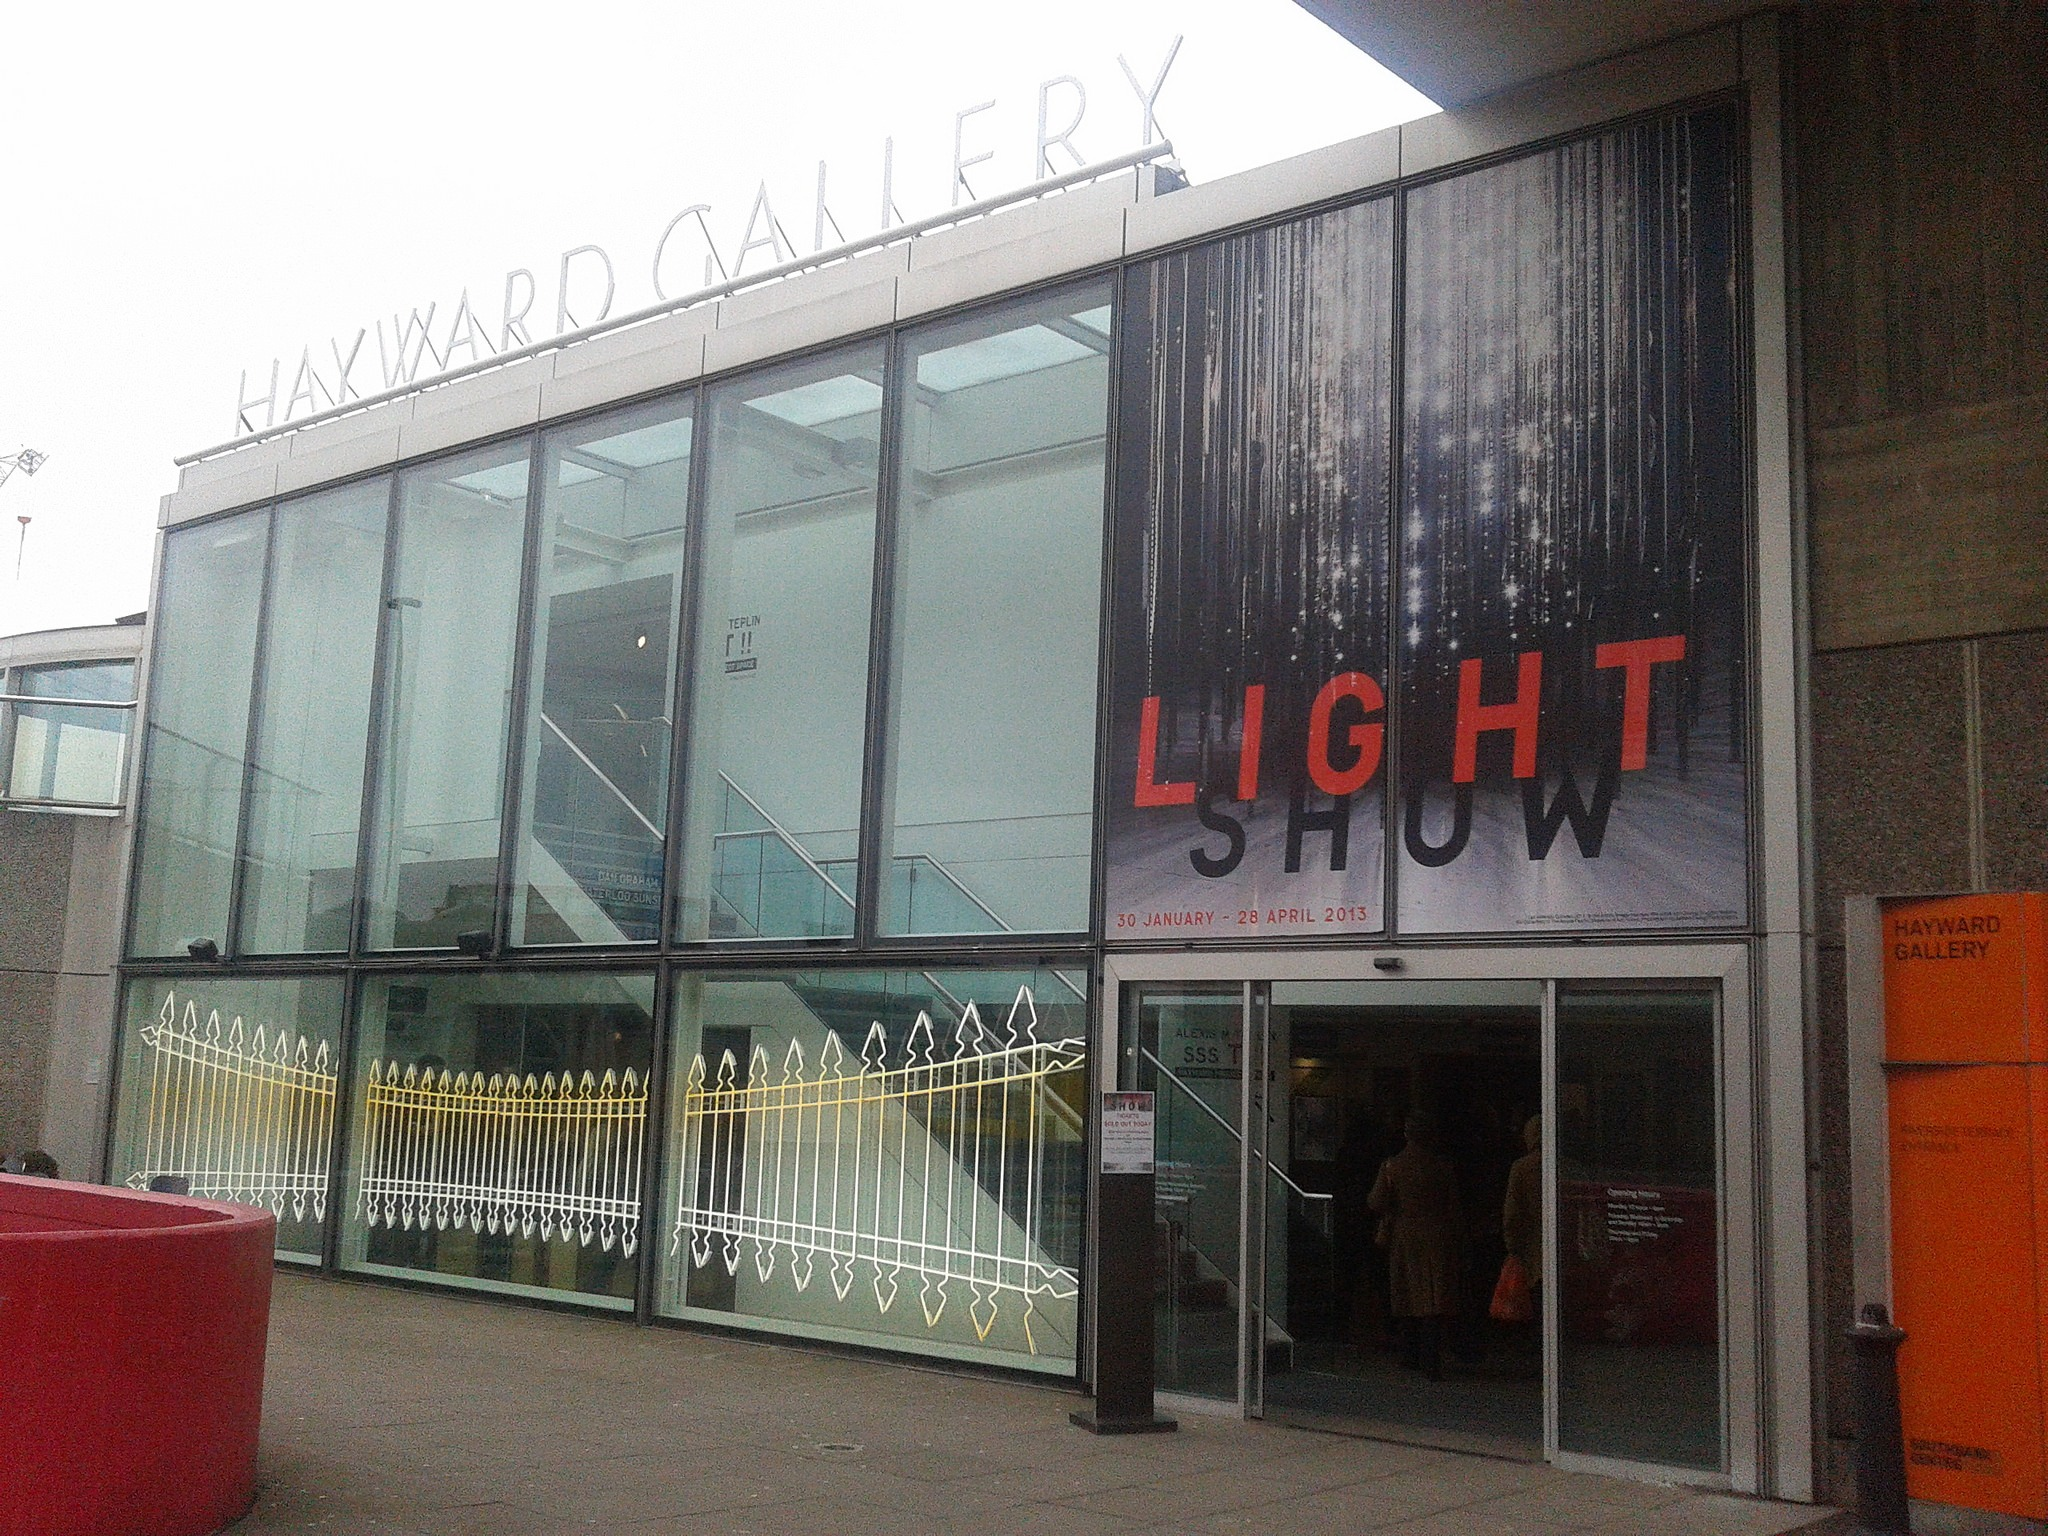 Light Show – The Hayward Gallery